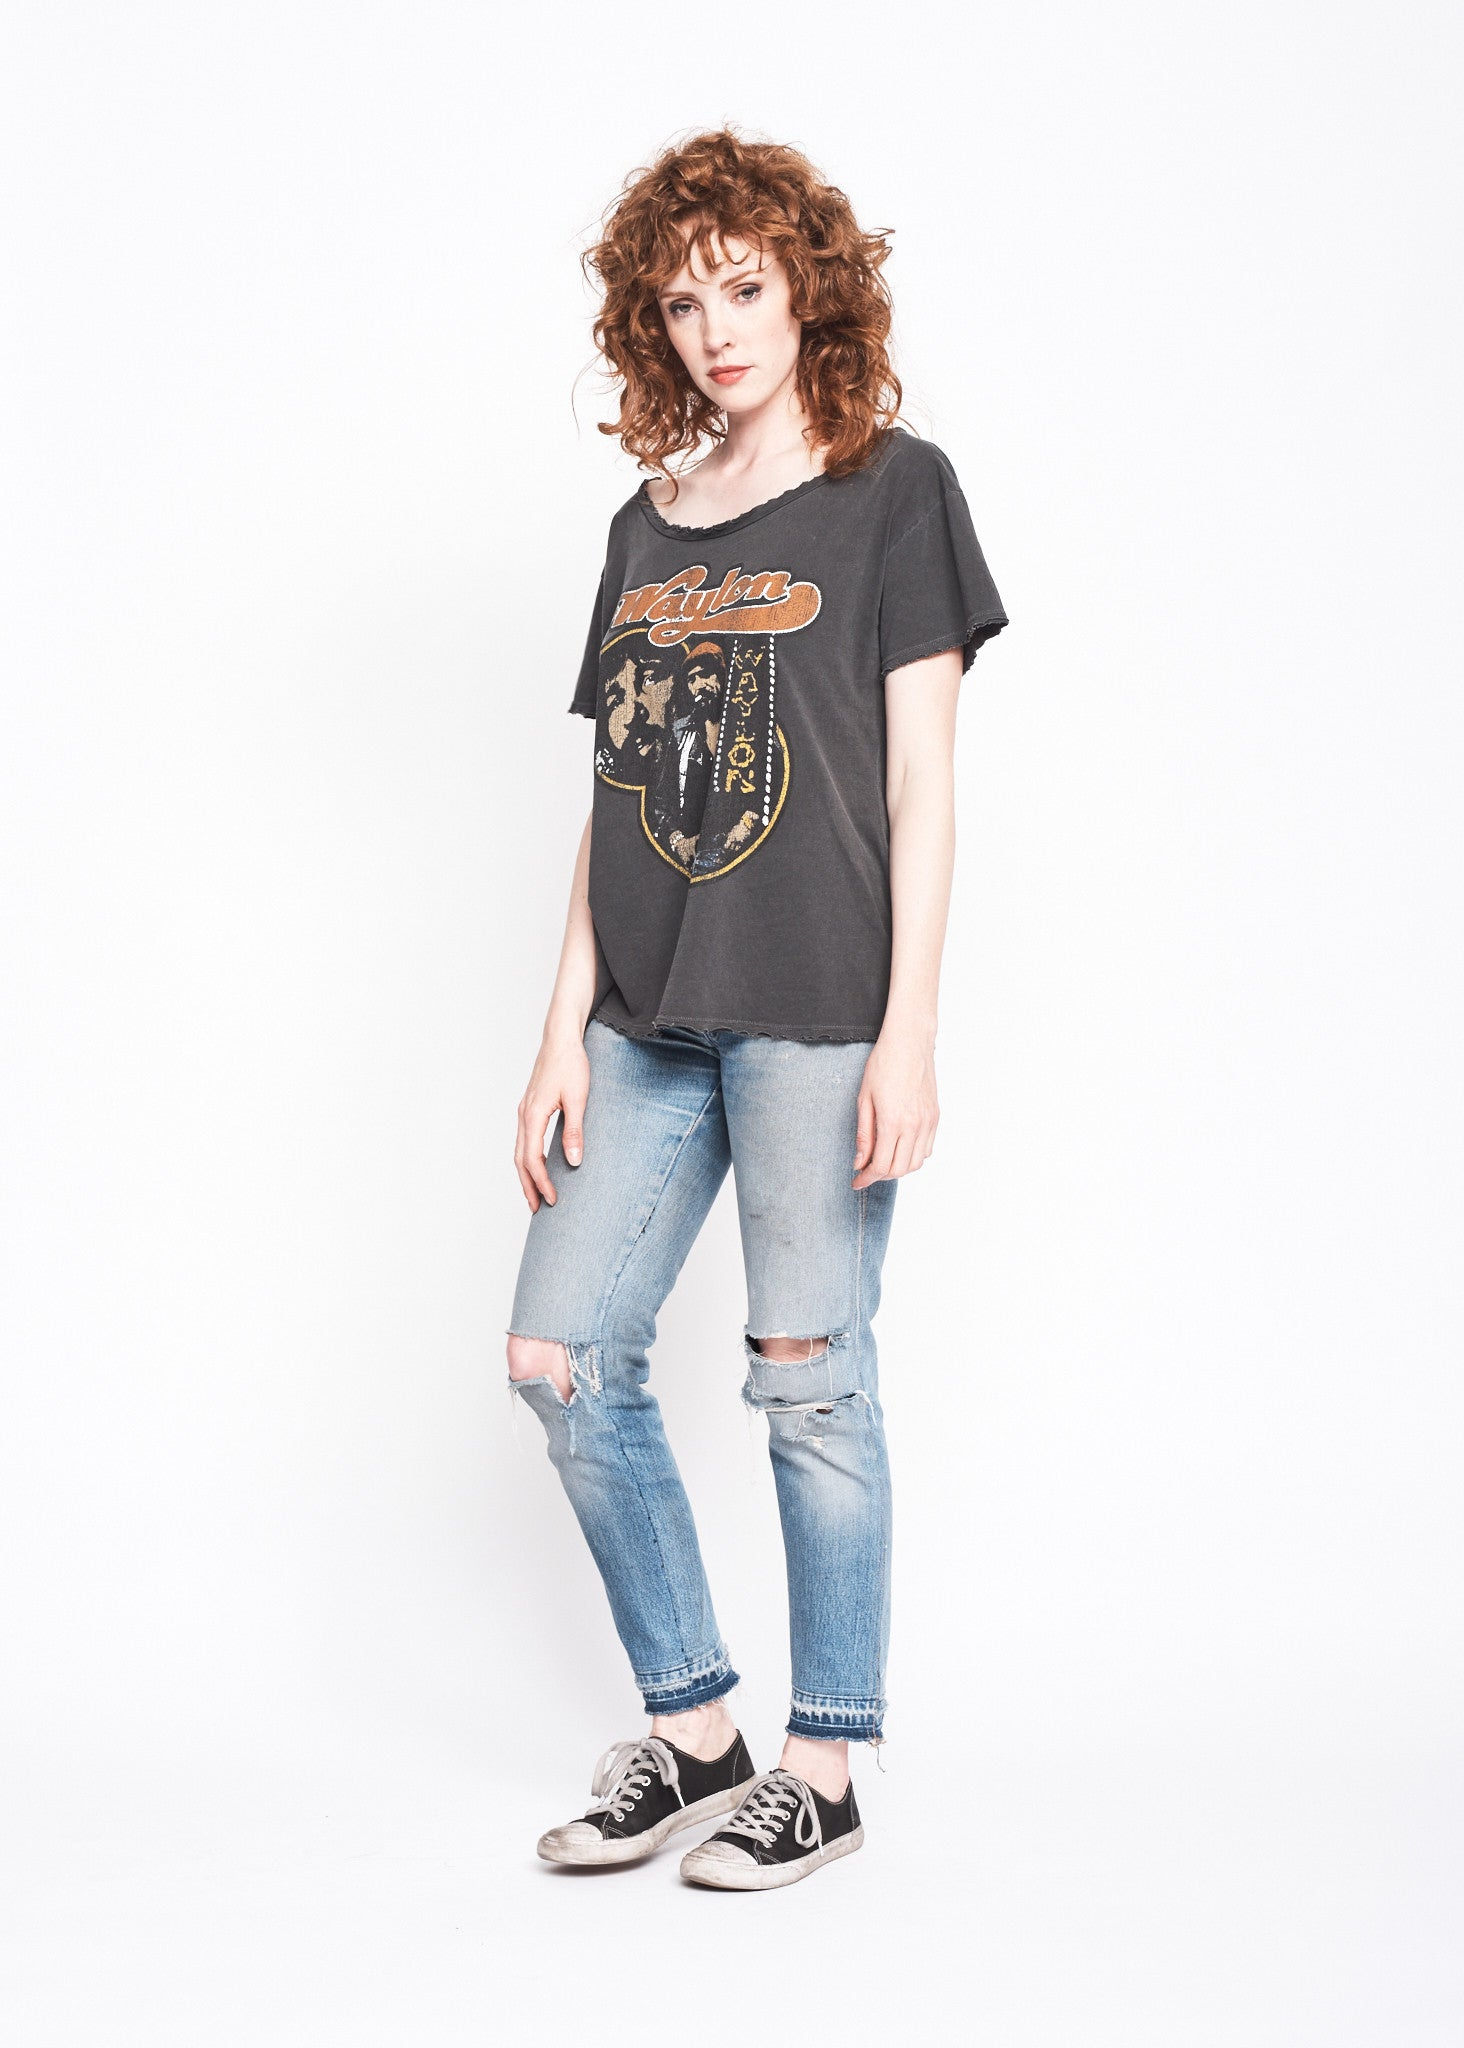 Waylon Jennings Collage Boyfriend Tee - Vintage Black